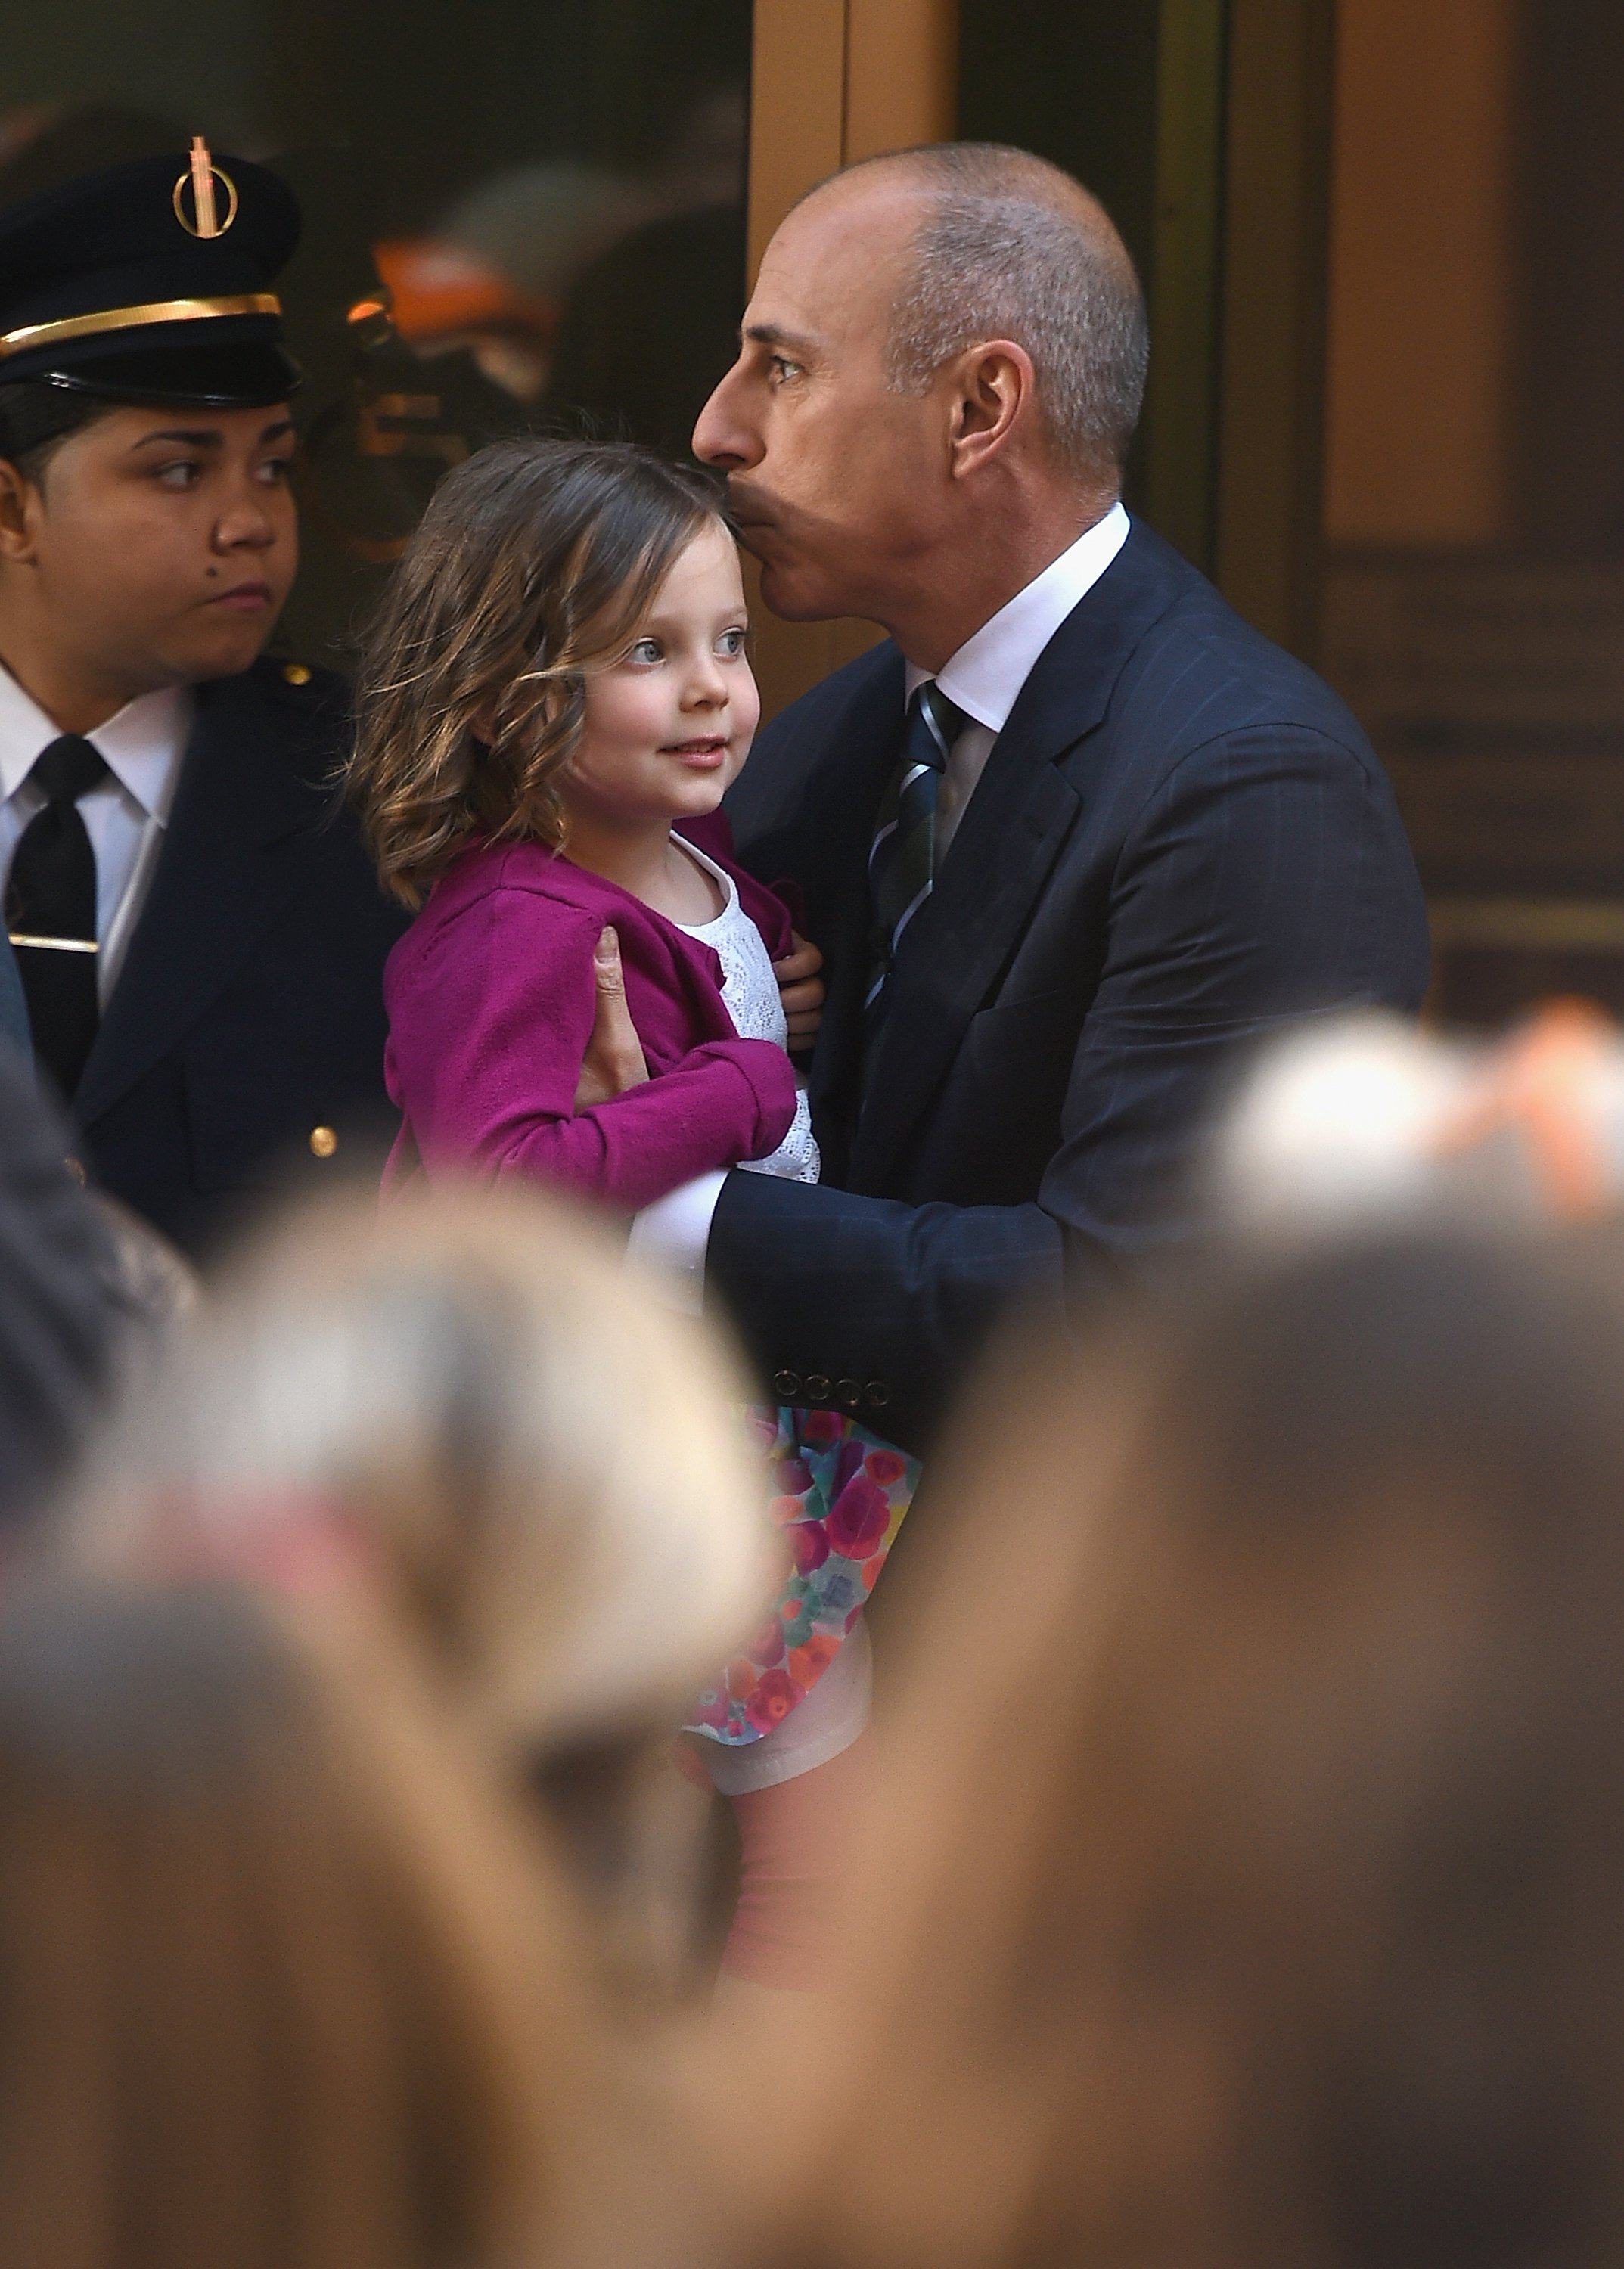 Matt Lauer and his daughter at NBC's Today on May 22, 2015 in New York   Photo: Dimitrios Kambouris/Getty Images